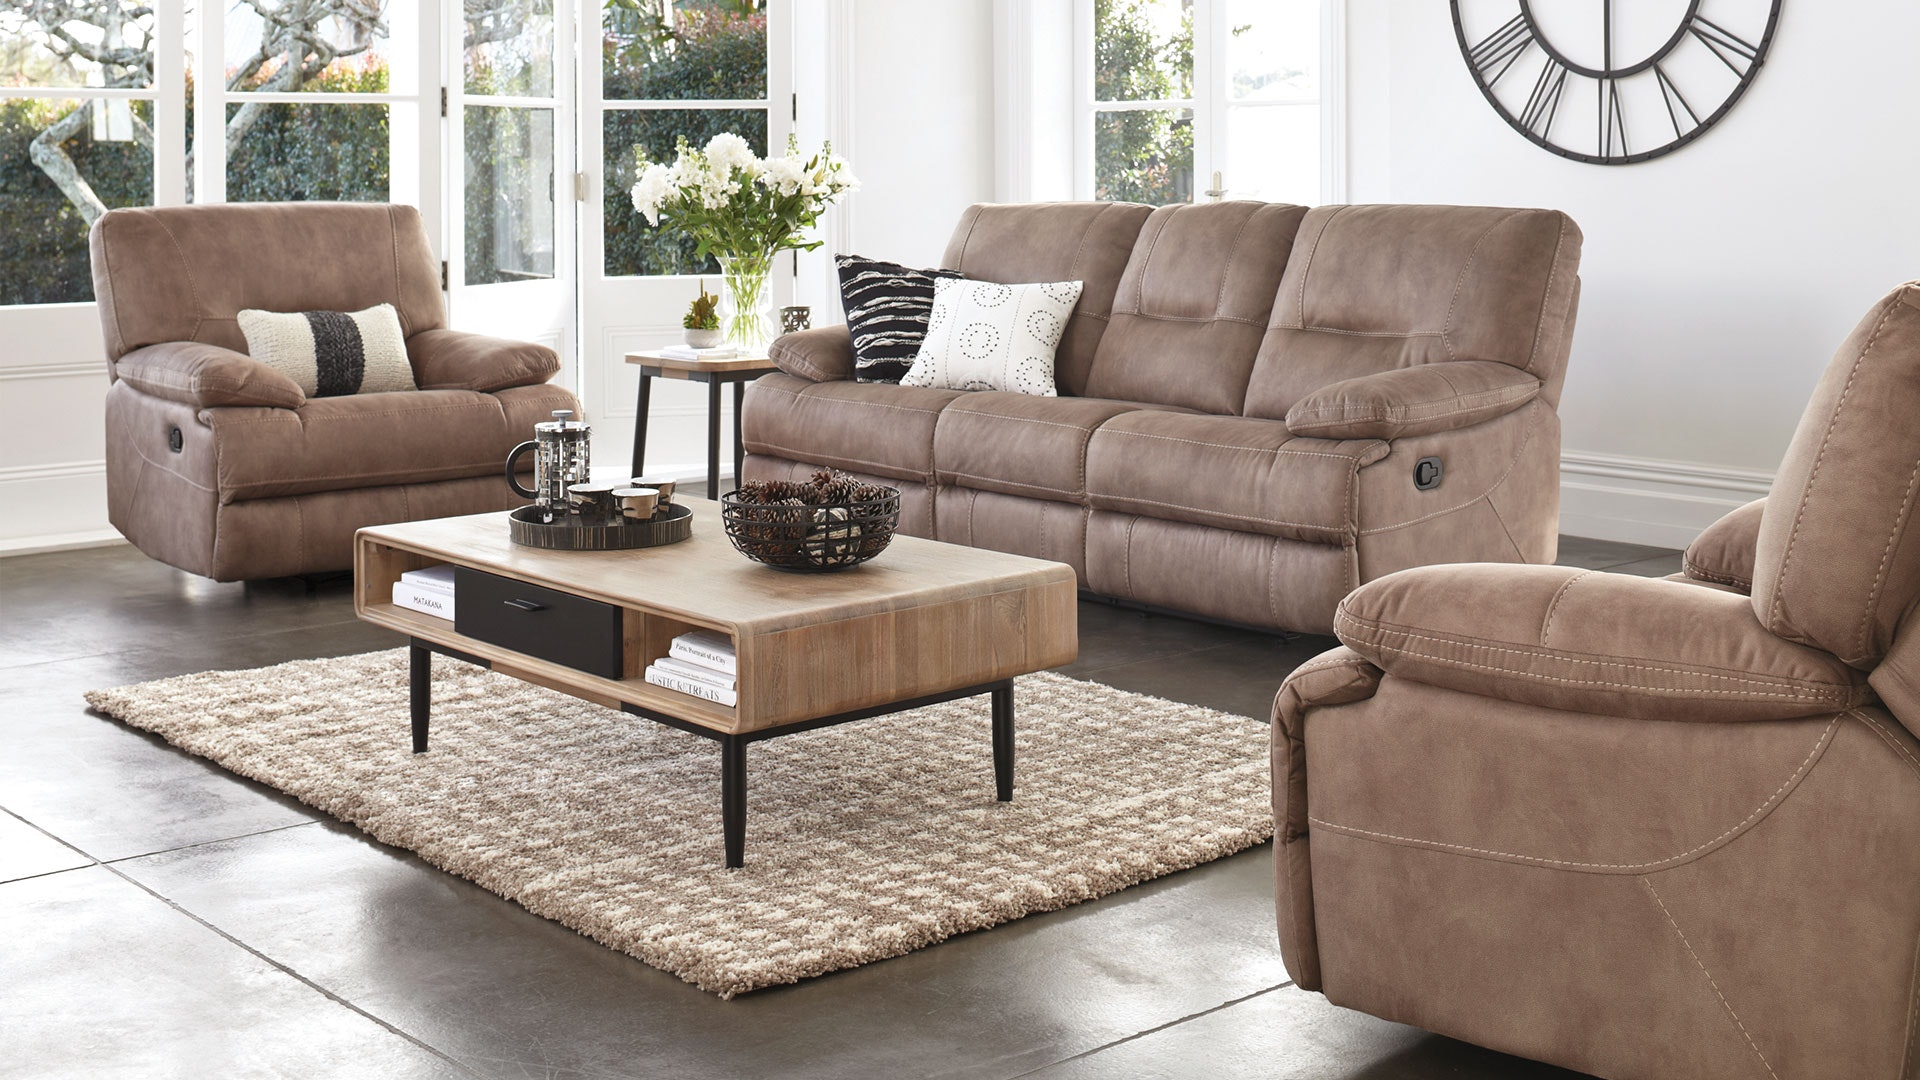 Dorset 3 Piece Fabric Recliner Lounge Suite